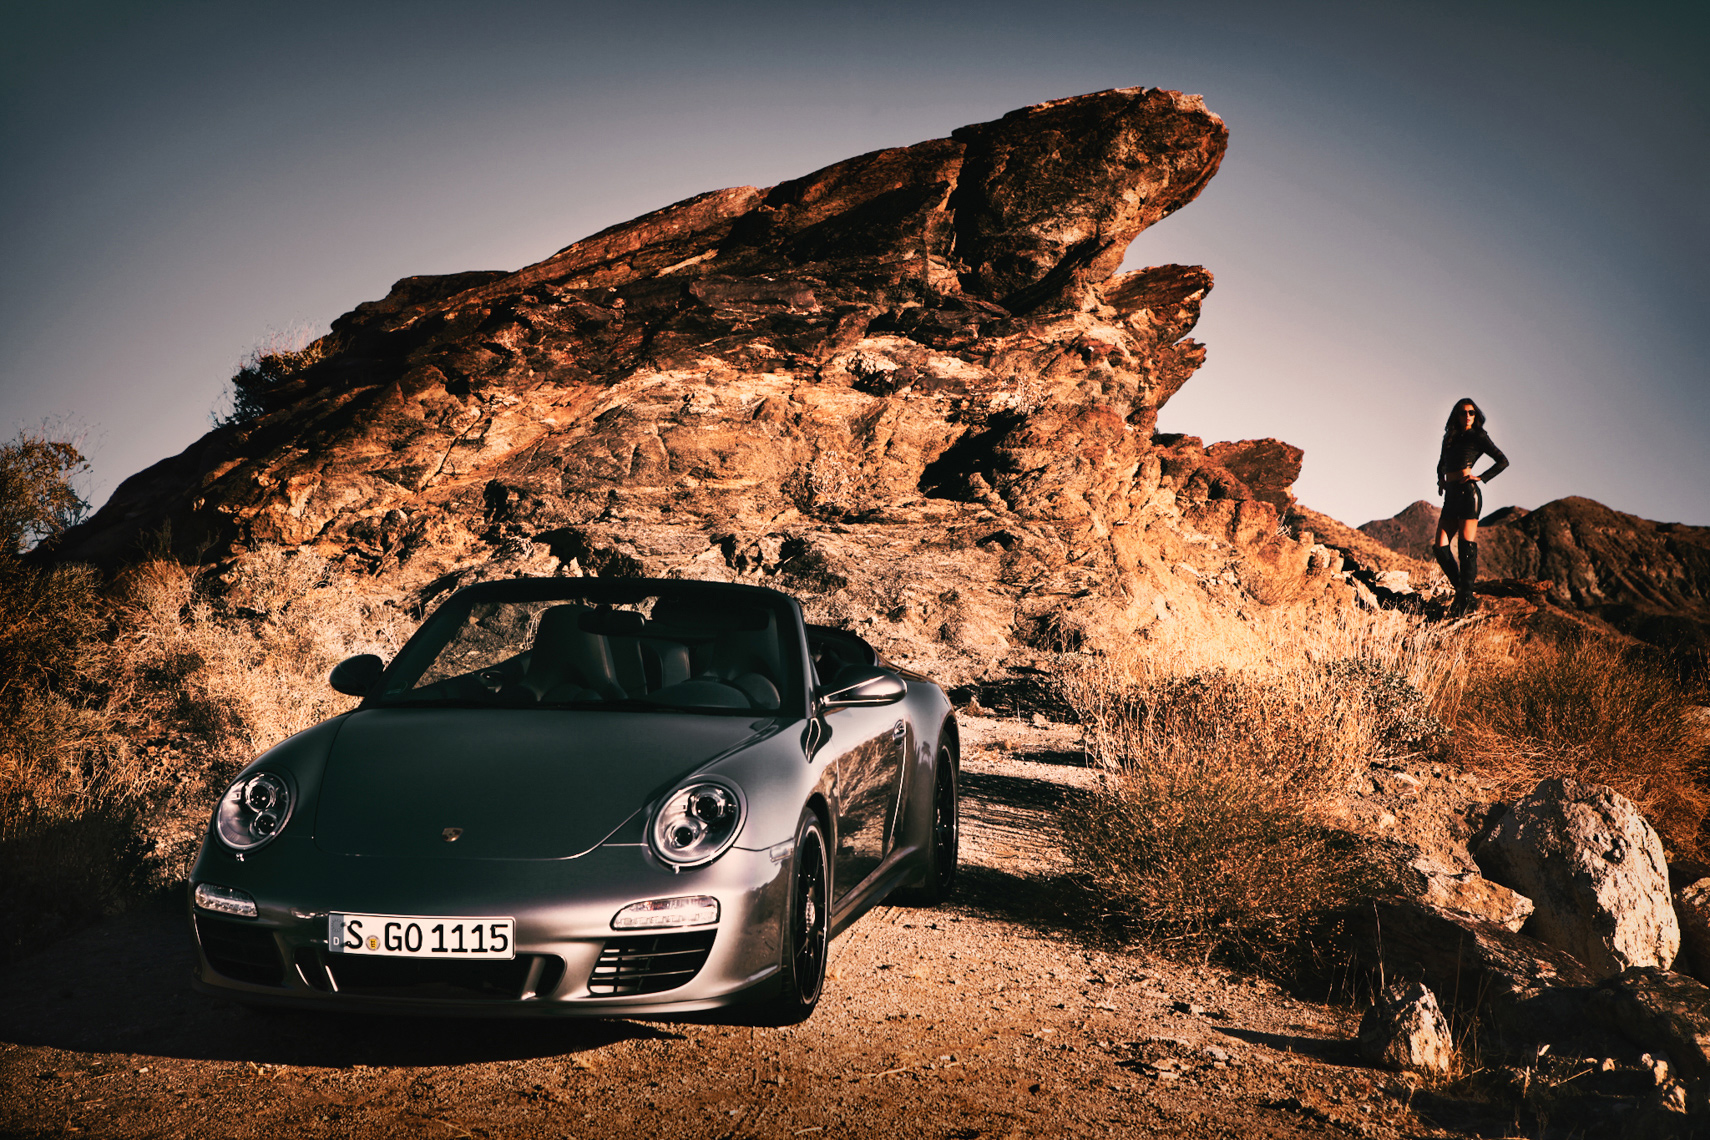 Fashion model with Porsche Carrera coupe by commercial aytomotive car photographer Michael Grecco